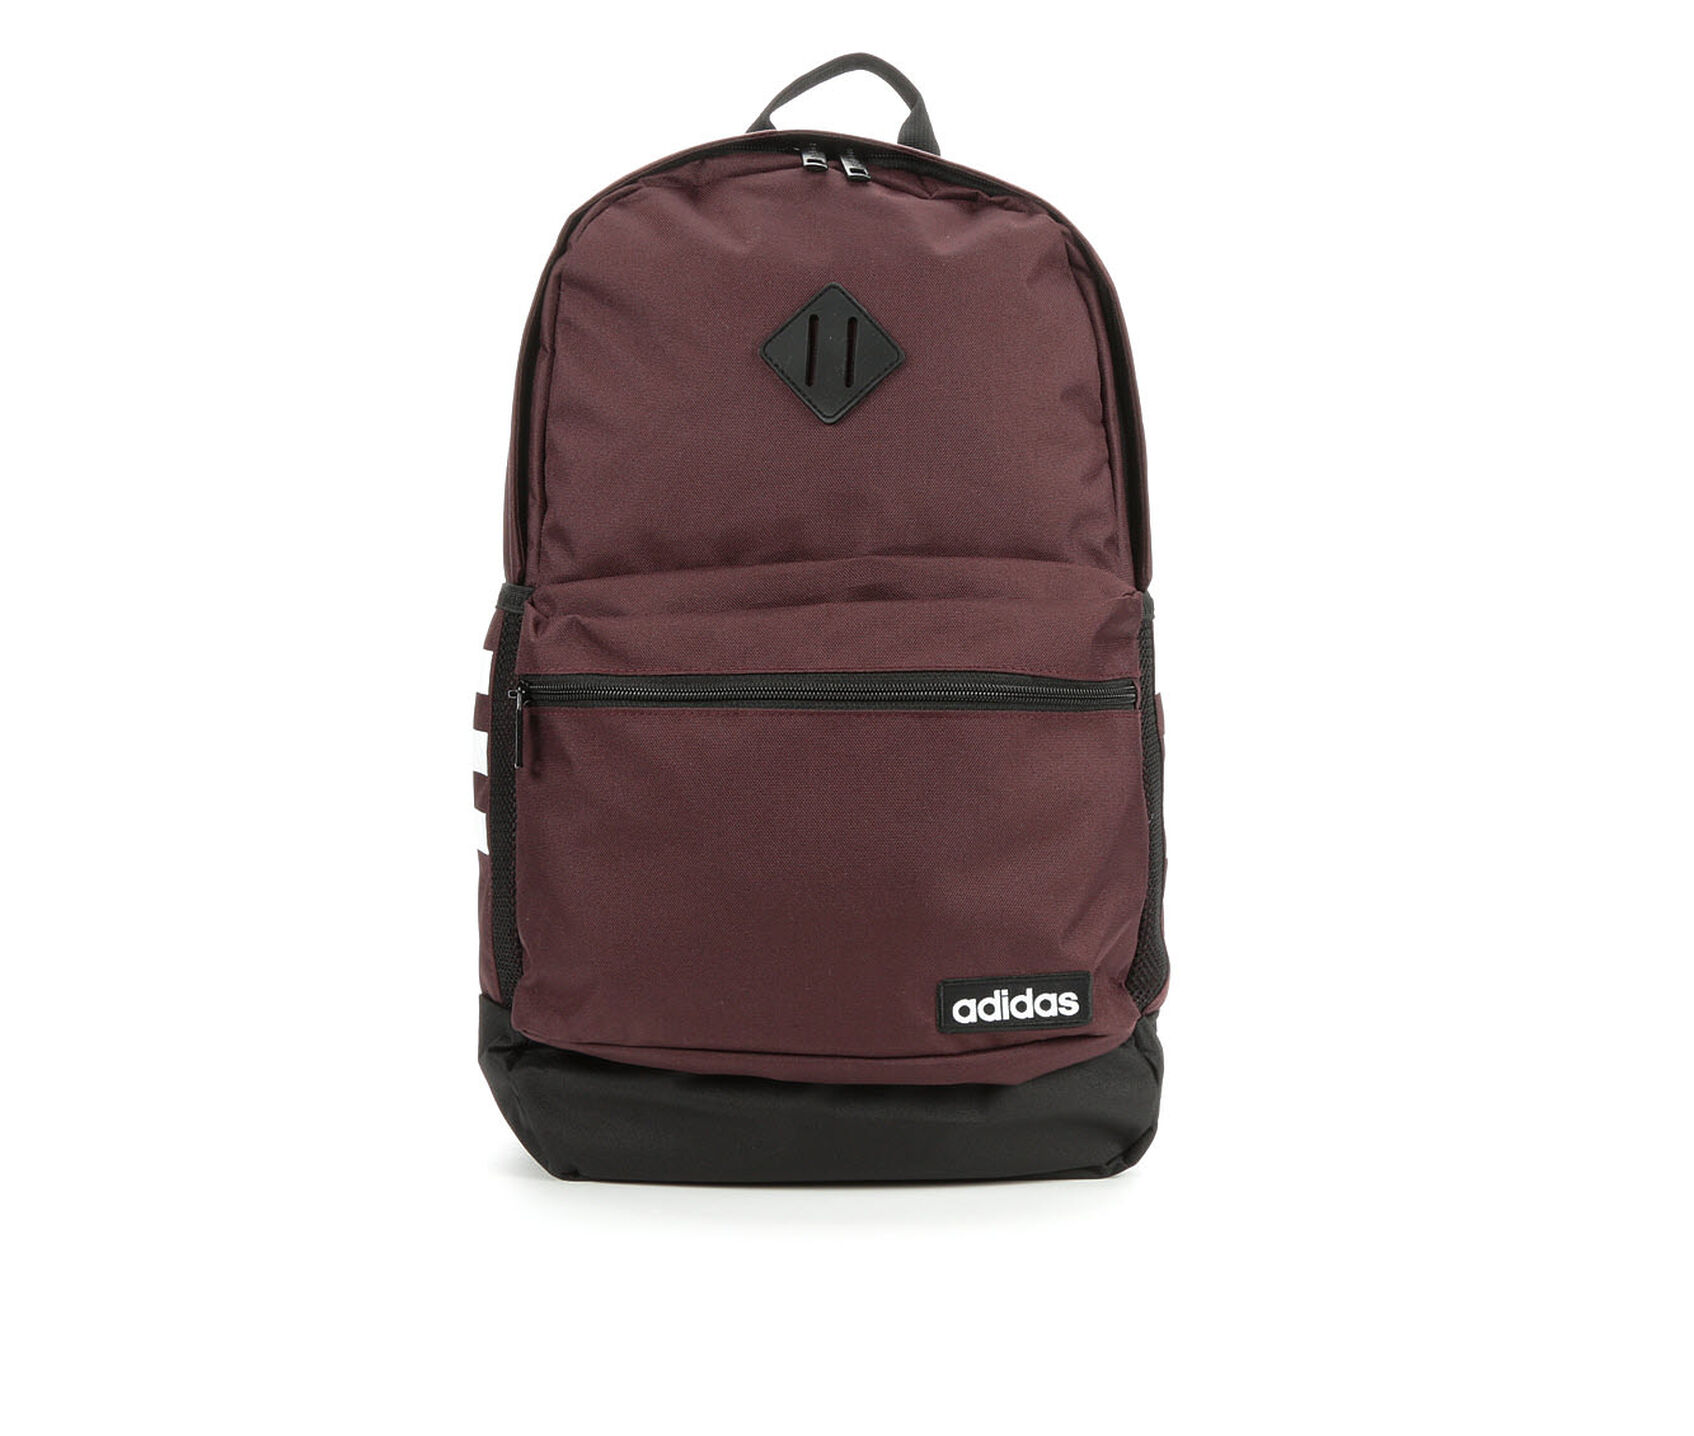 9e37932661 Adidas Classic 3s II Backpack. Previous